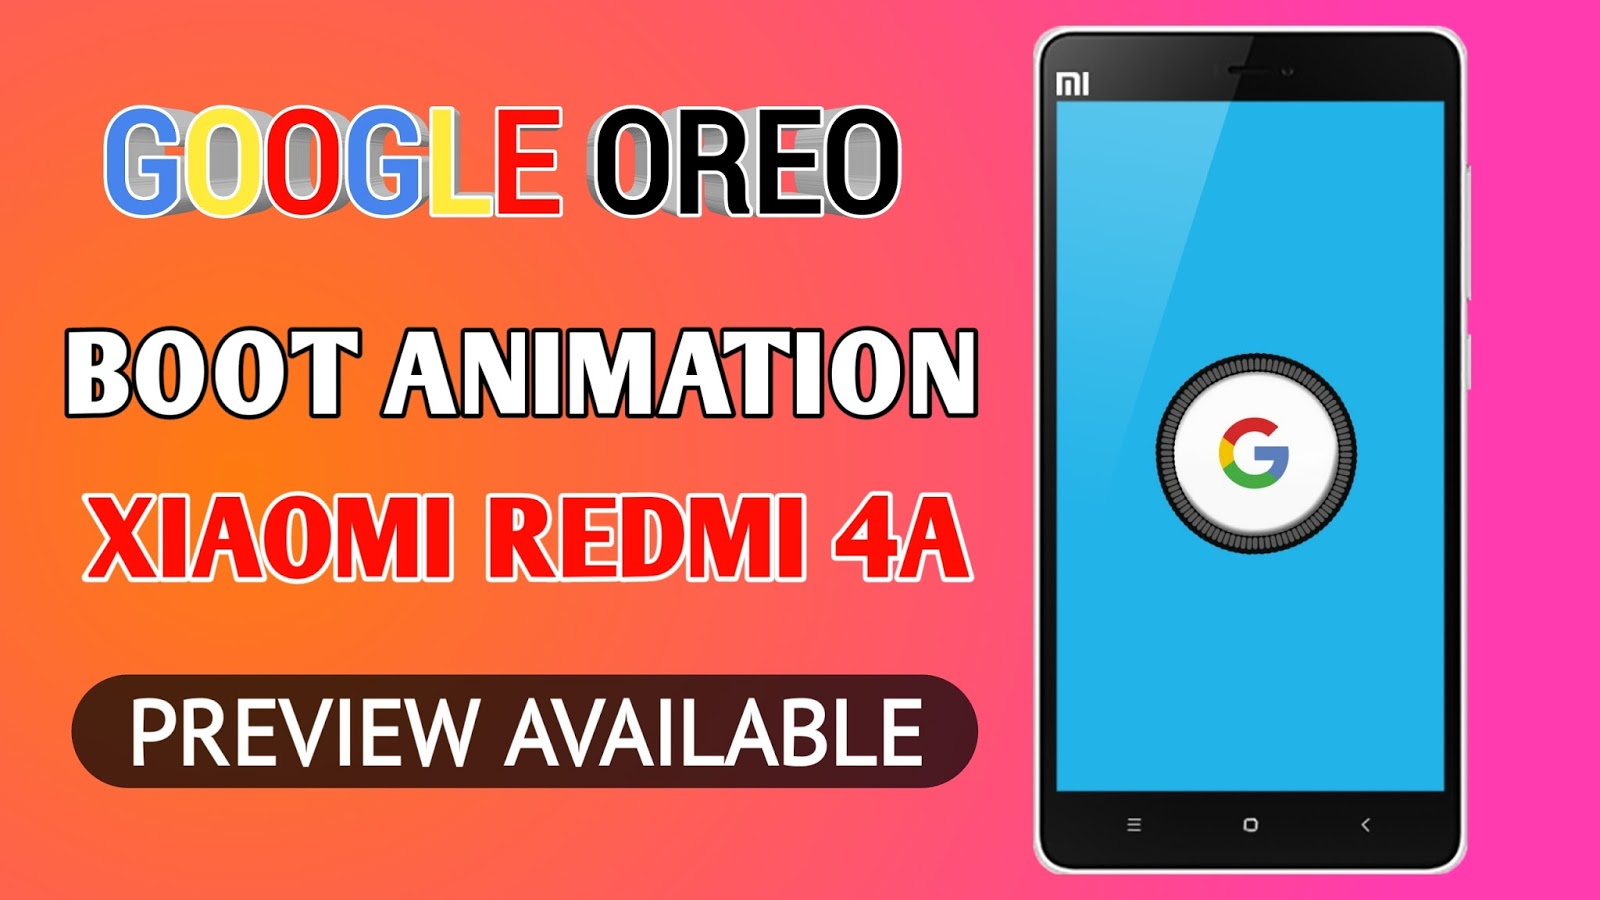 GOOGLE OREO BOOT ANIMATION FOR XIAOMI REDMI 4A | PREVIEW AVAILABLE